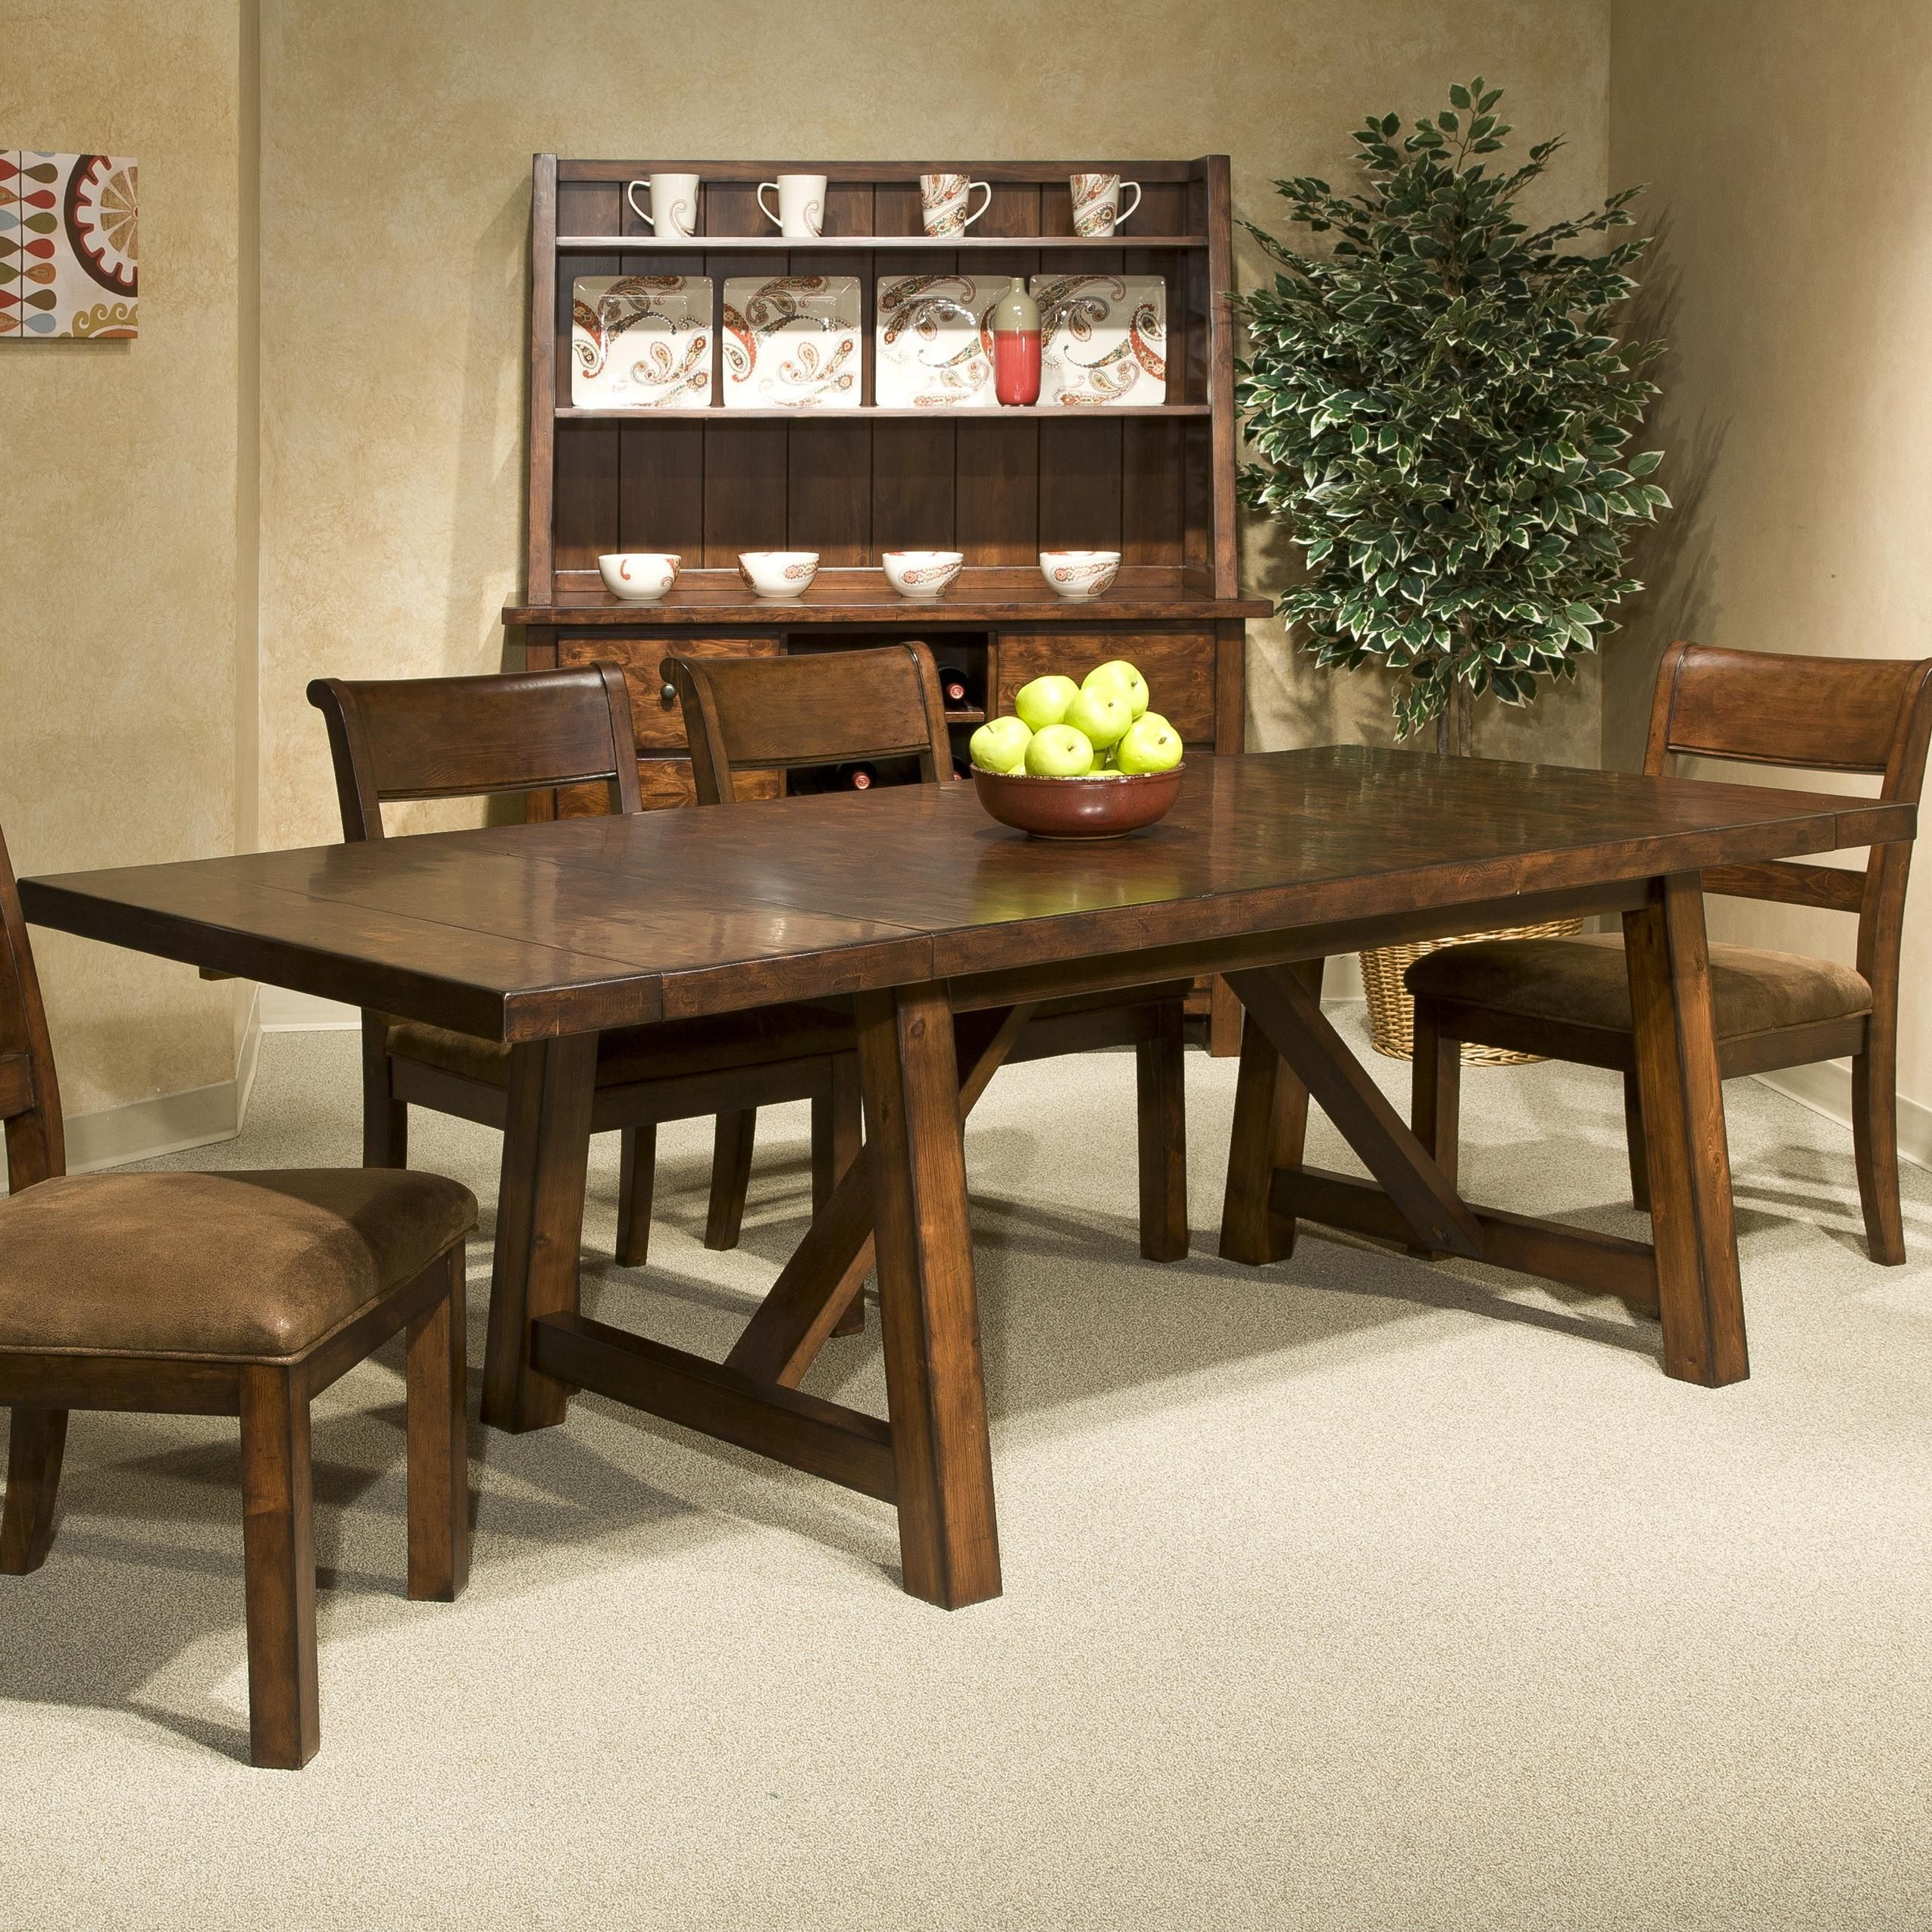 dining room furniture pittsburgh | Bench Creek Rectangular Trestle Dining Table by Intercon ...